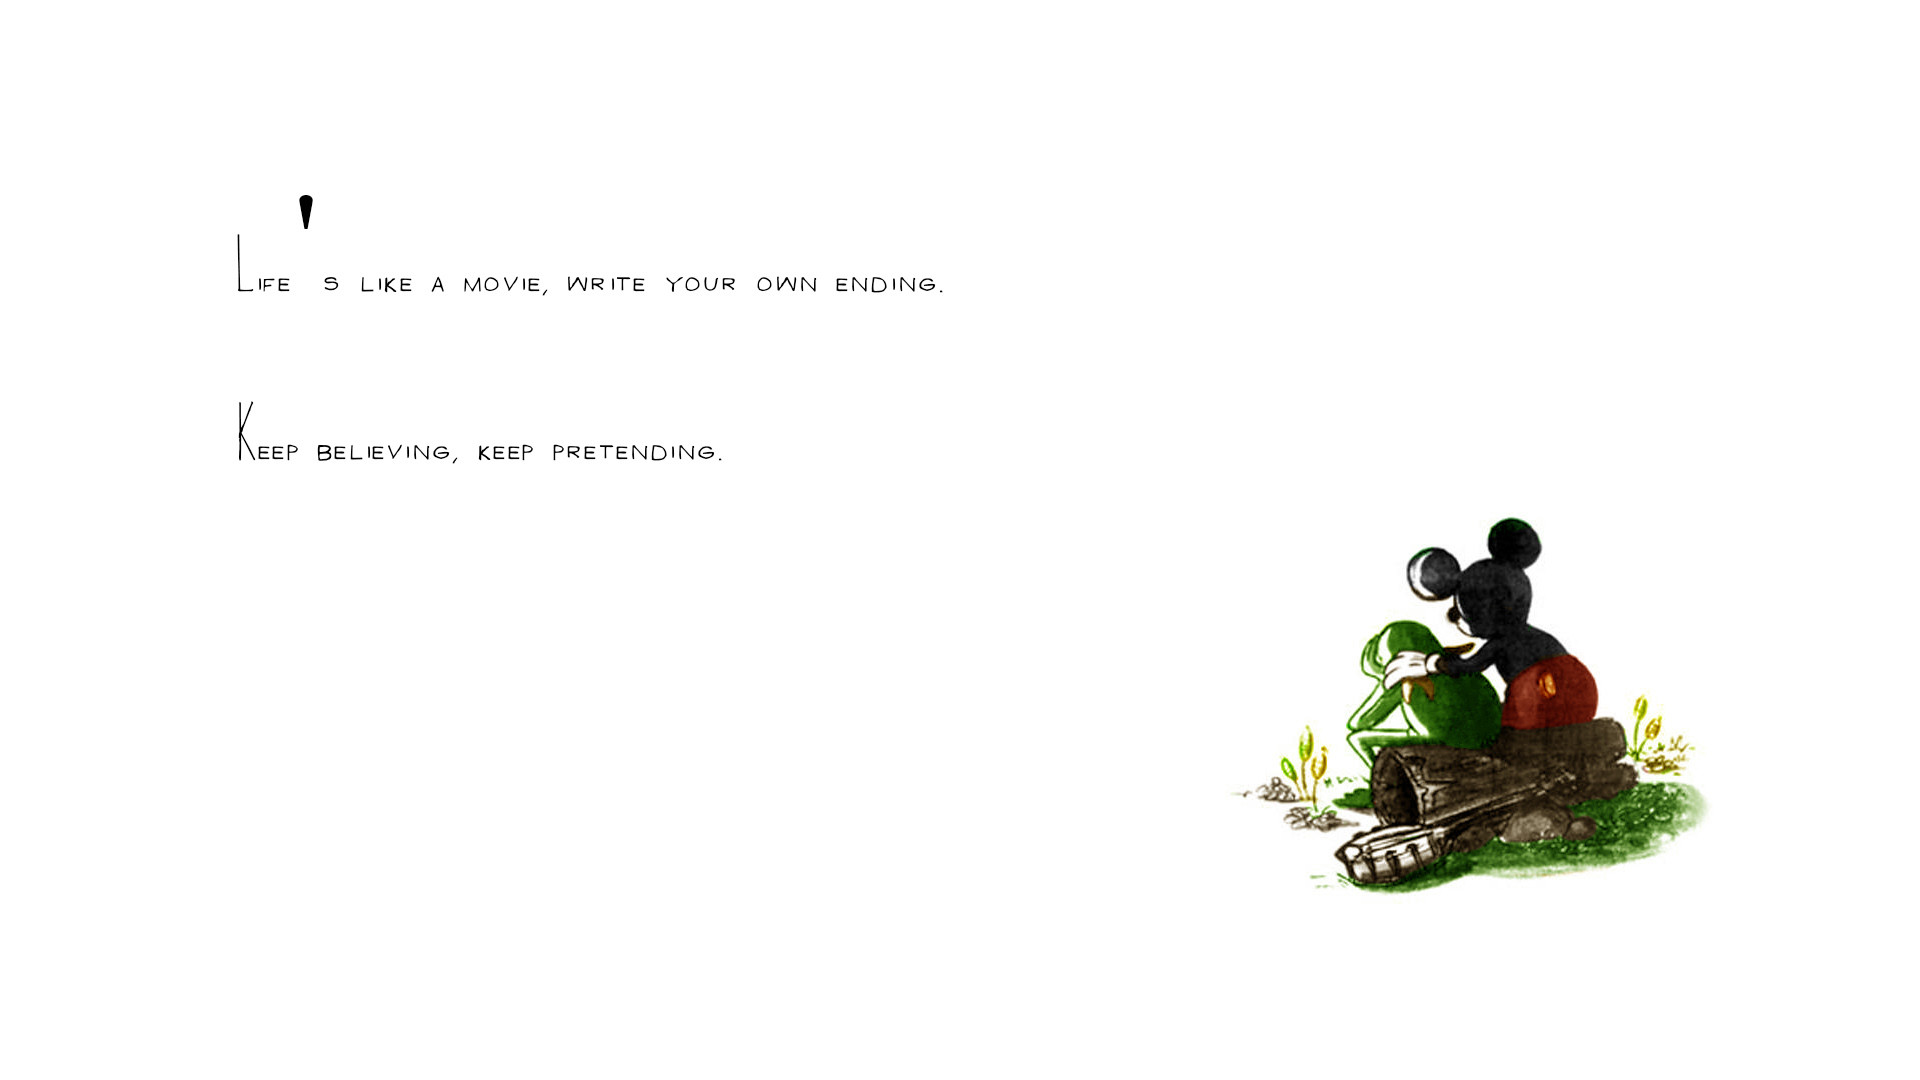 Life White Mickey Mouse Kermit the Frog Embrace wallpaper | |  118017 | WallpaperUP